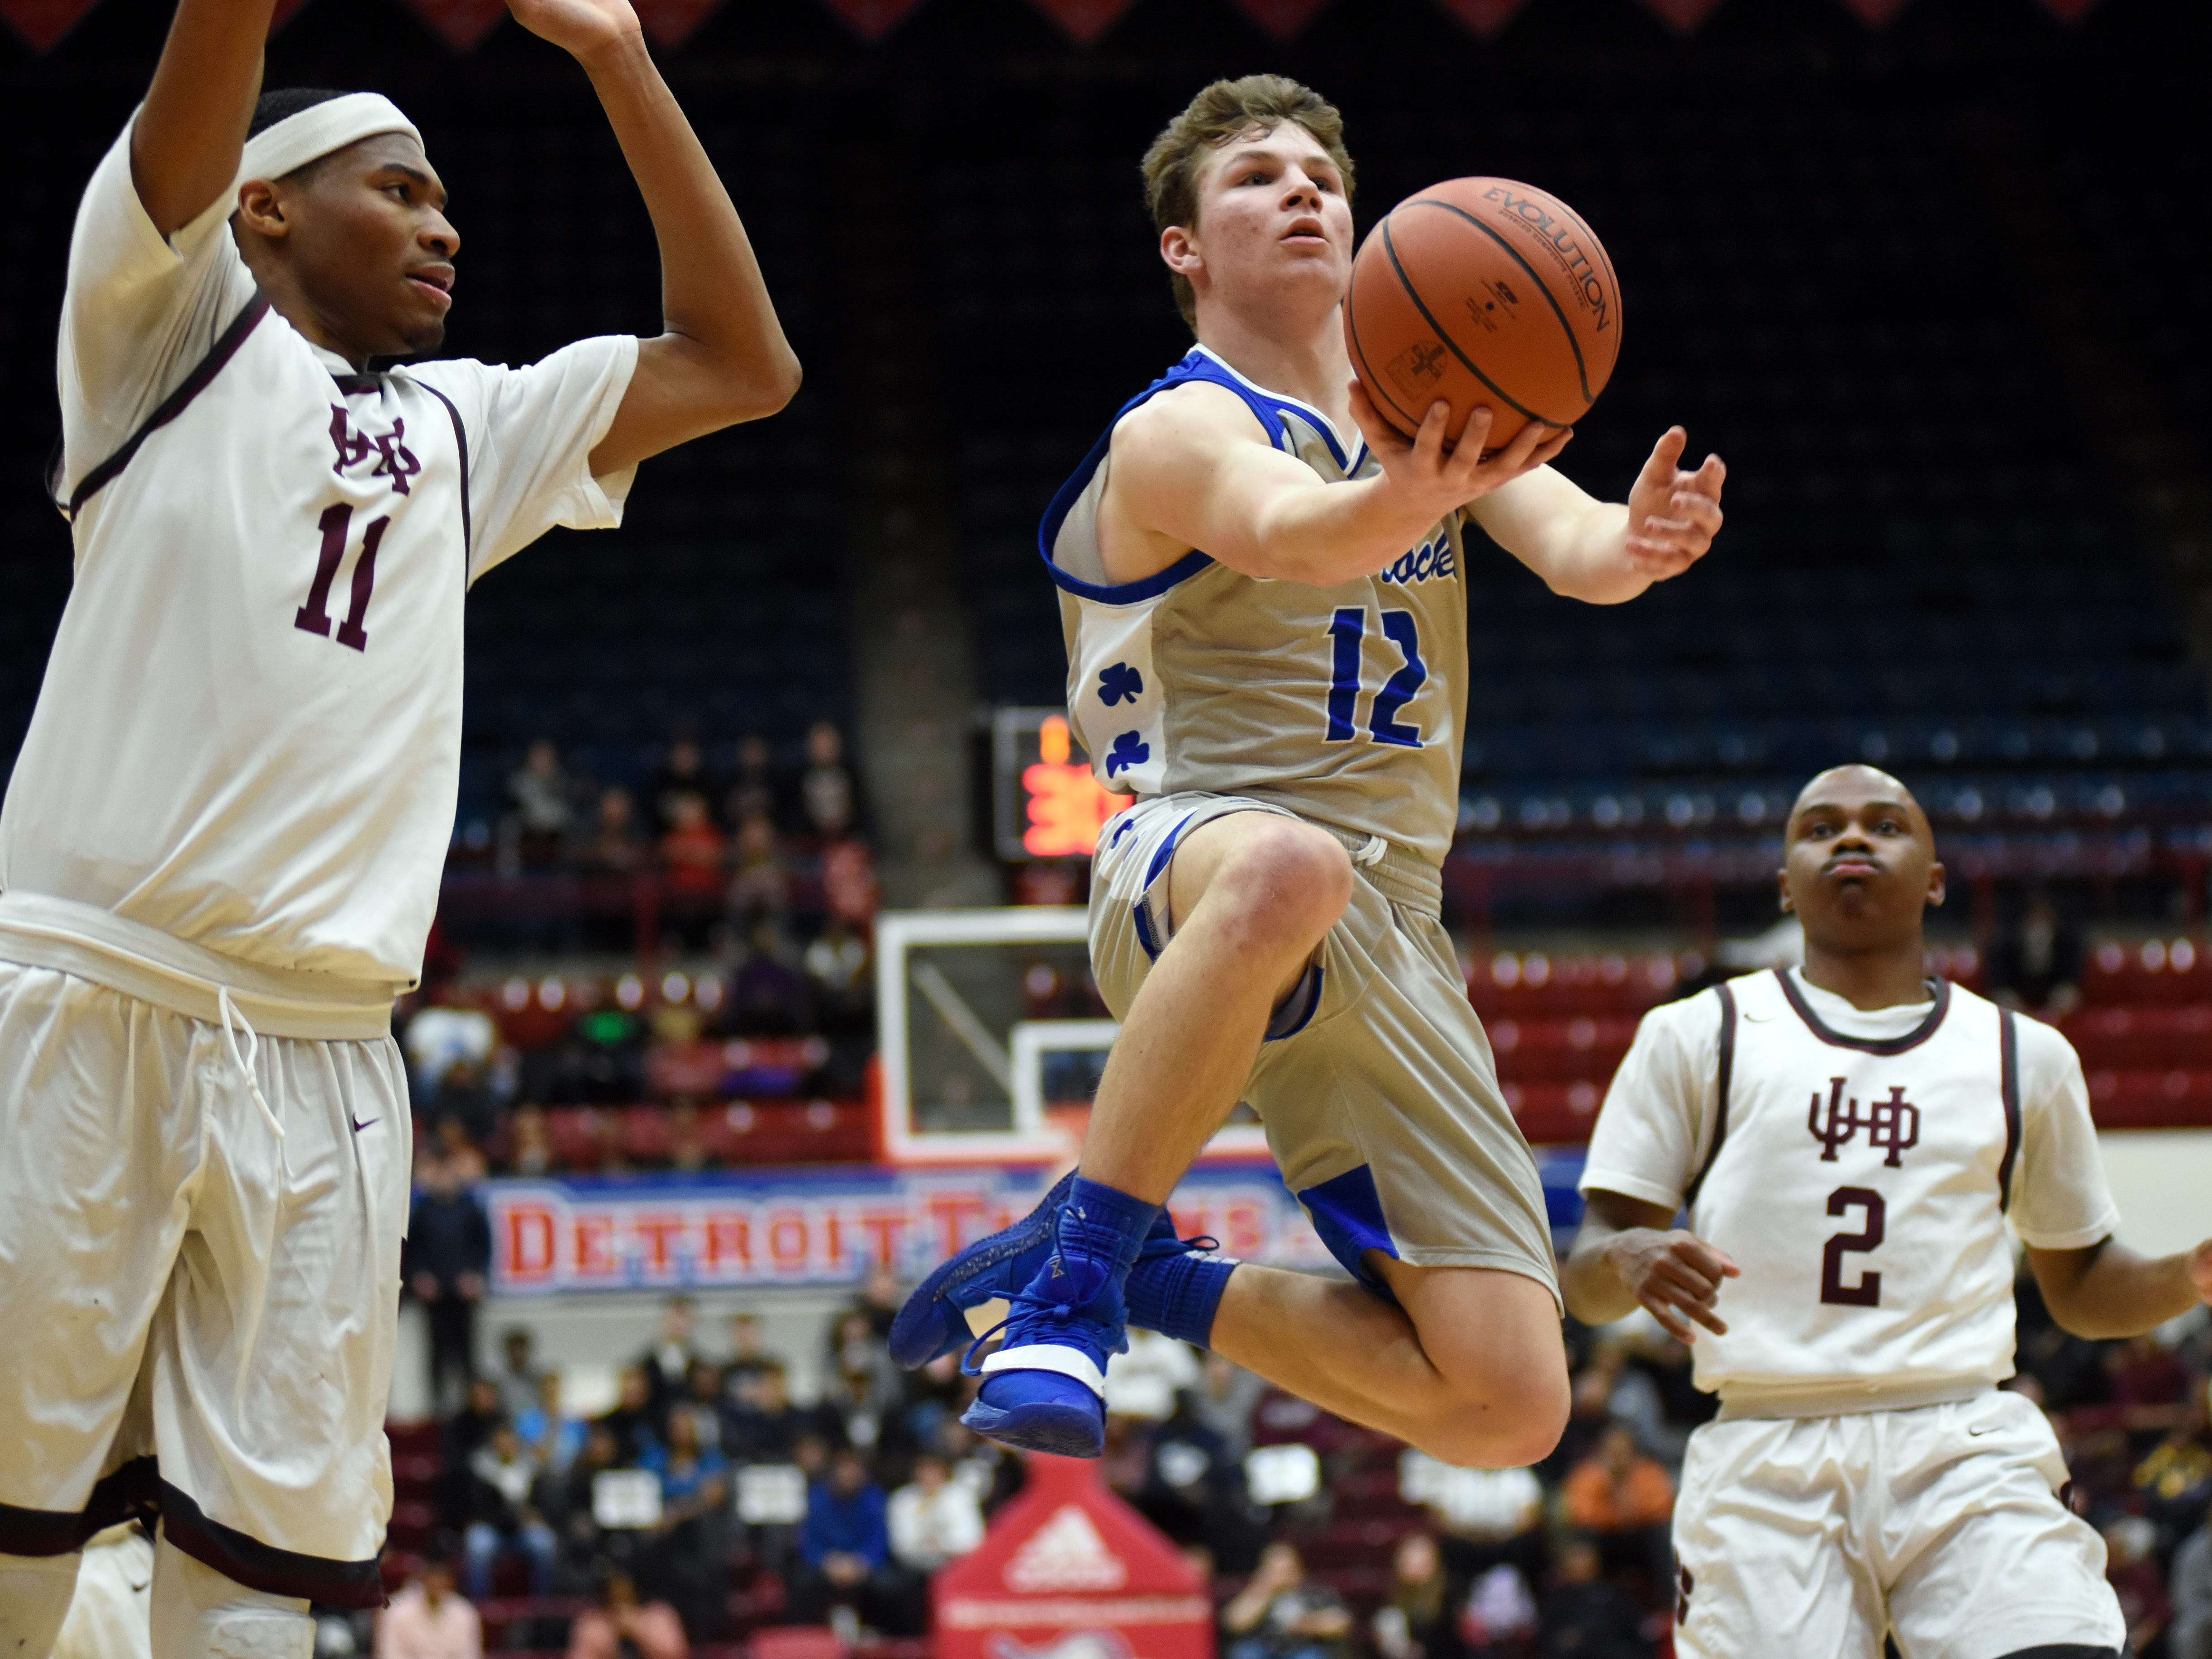 Detroit Catholic Central's Keegan Koehler (12) goes in for a layup in between U. of D Jesuit forward Jalen Thomas (11), left, and guard Caleb Hunter (2) during the third quarter.